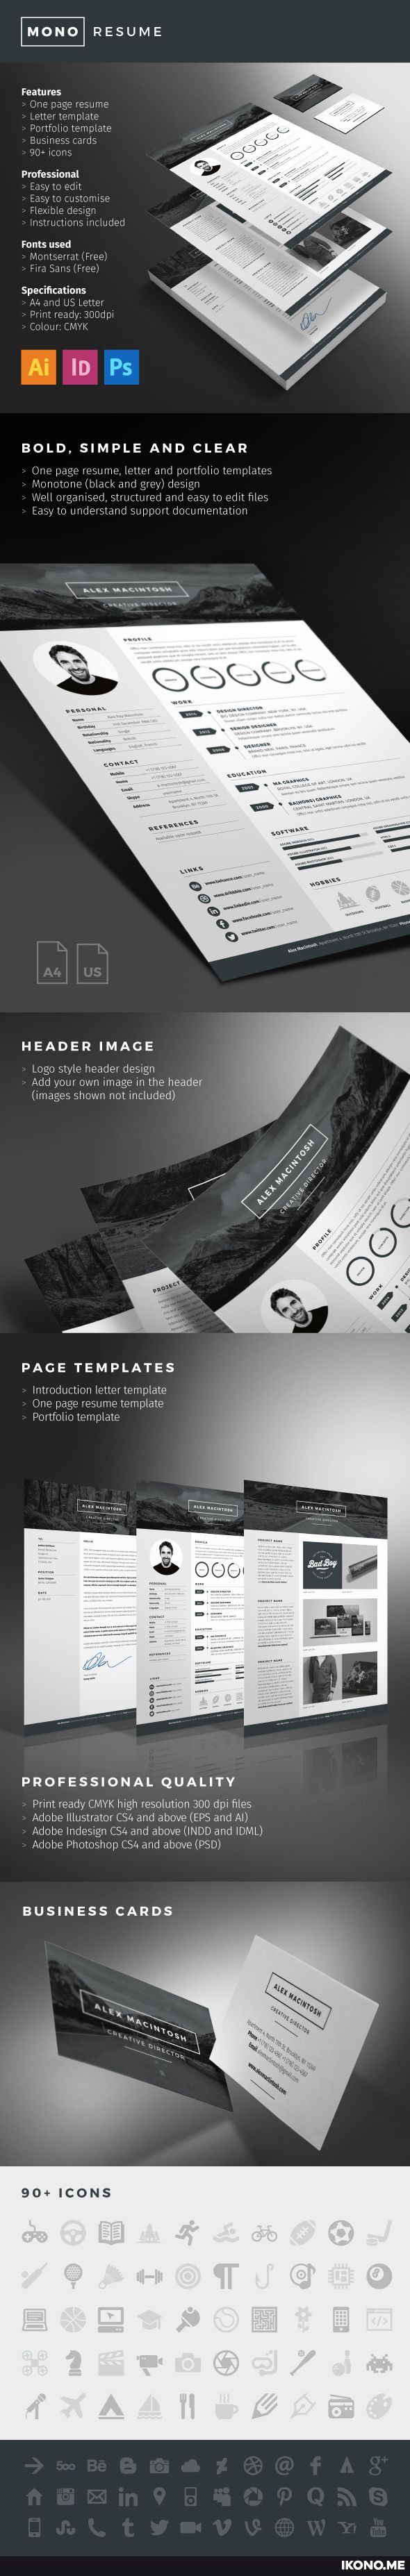 best images about design resumes simple love this monotone resume style especially the head and footer looks for more resume design inspirations click here creative resume design resume style